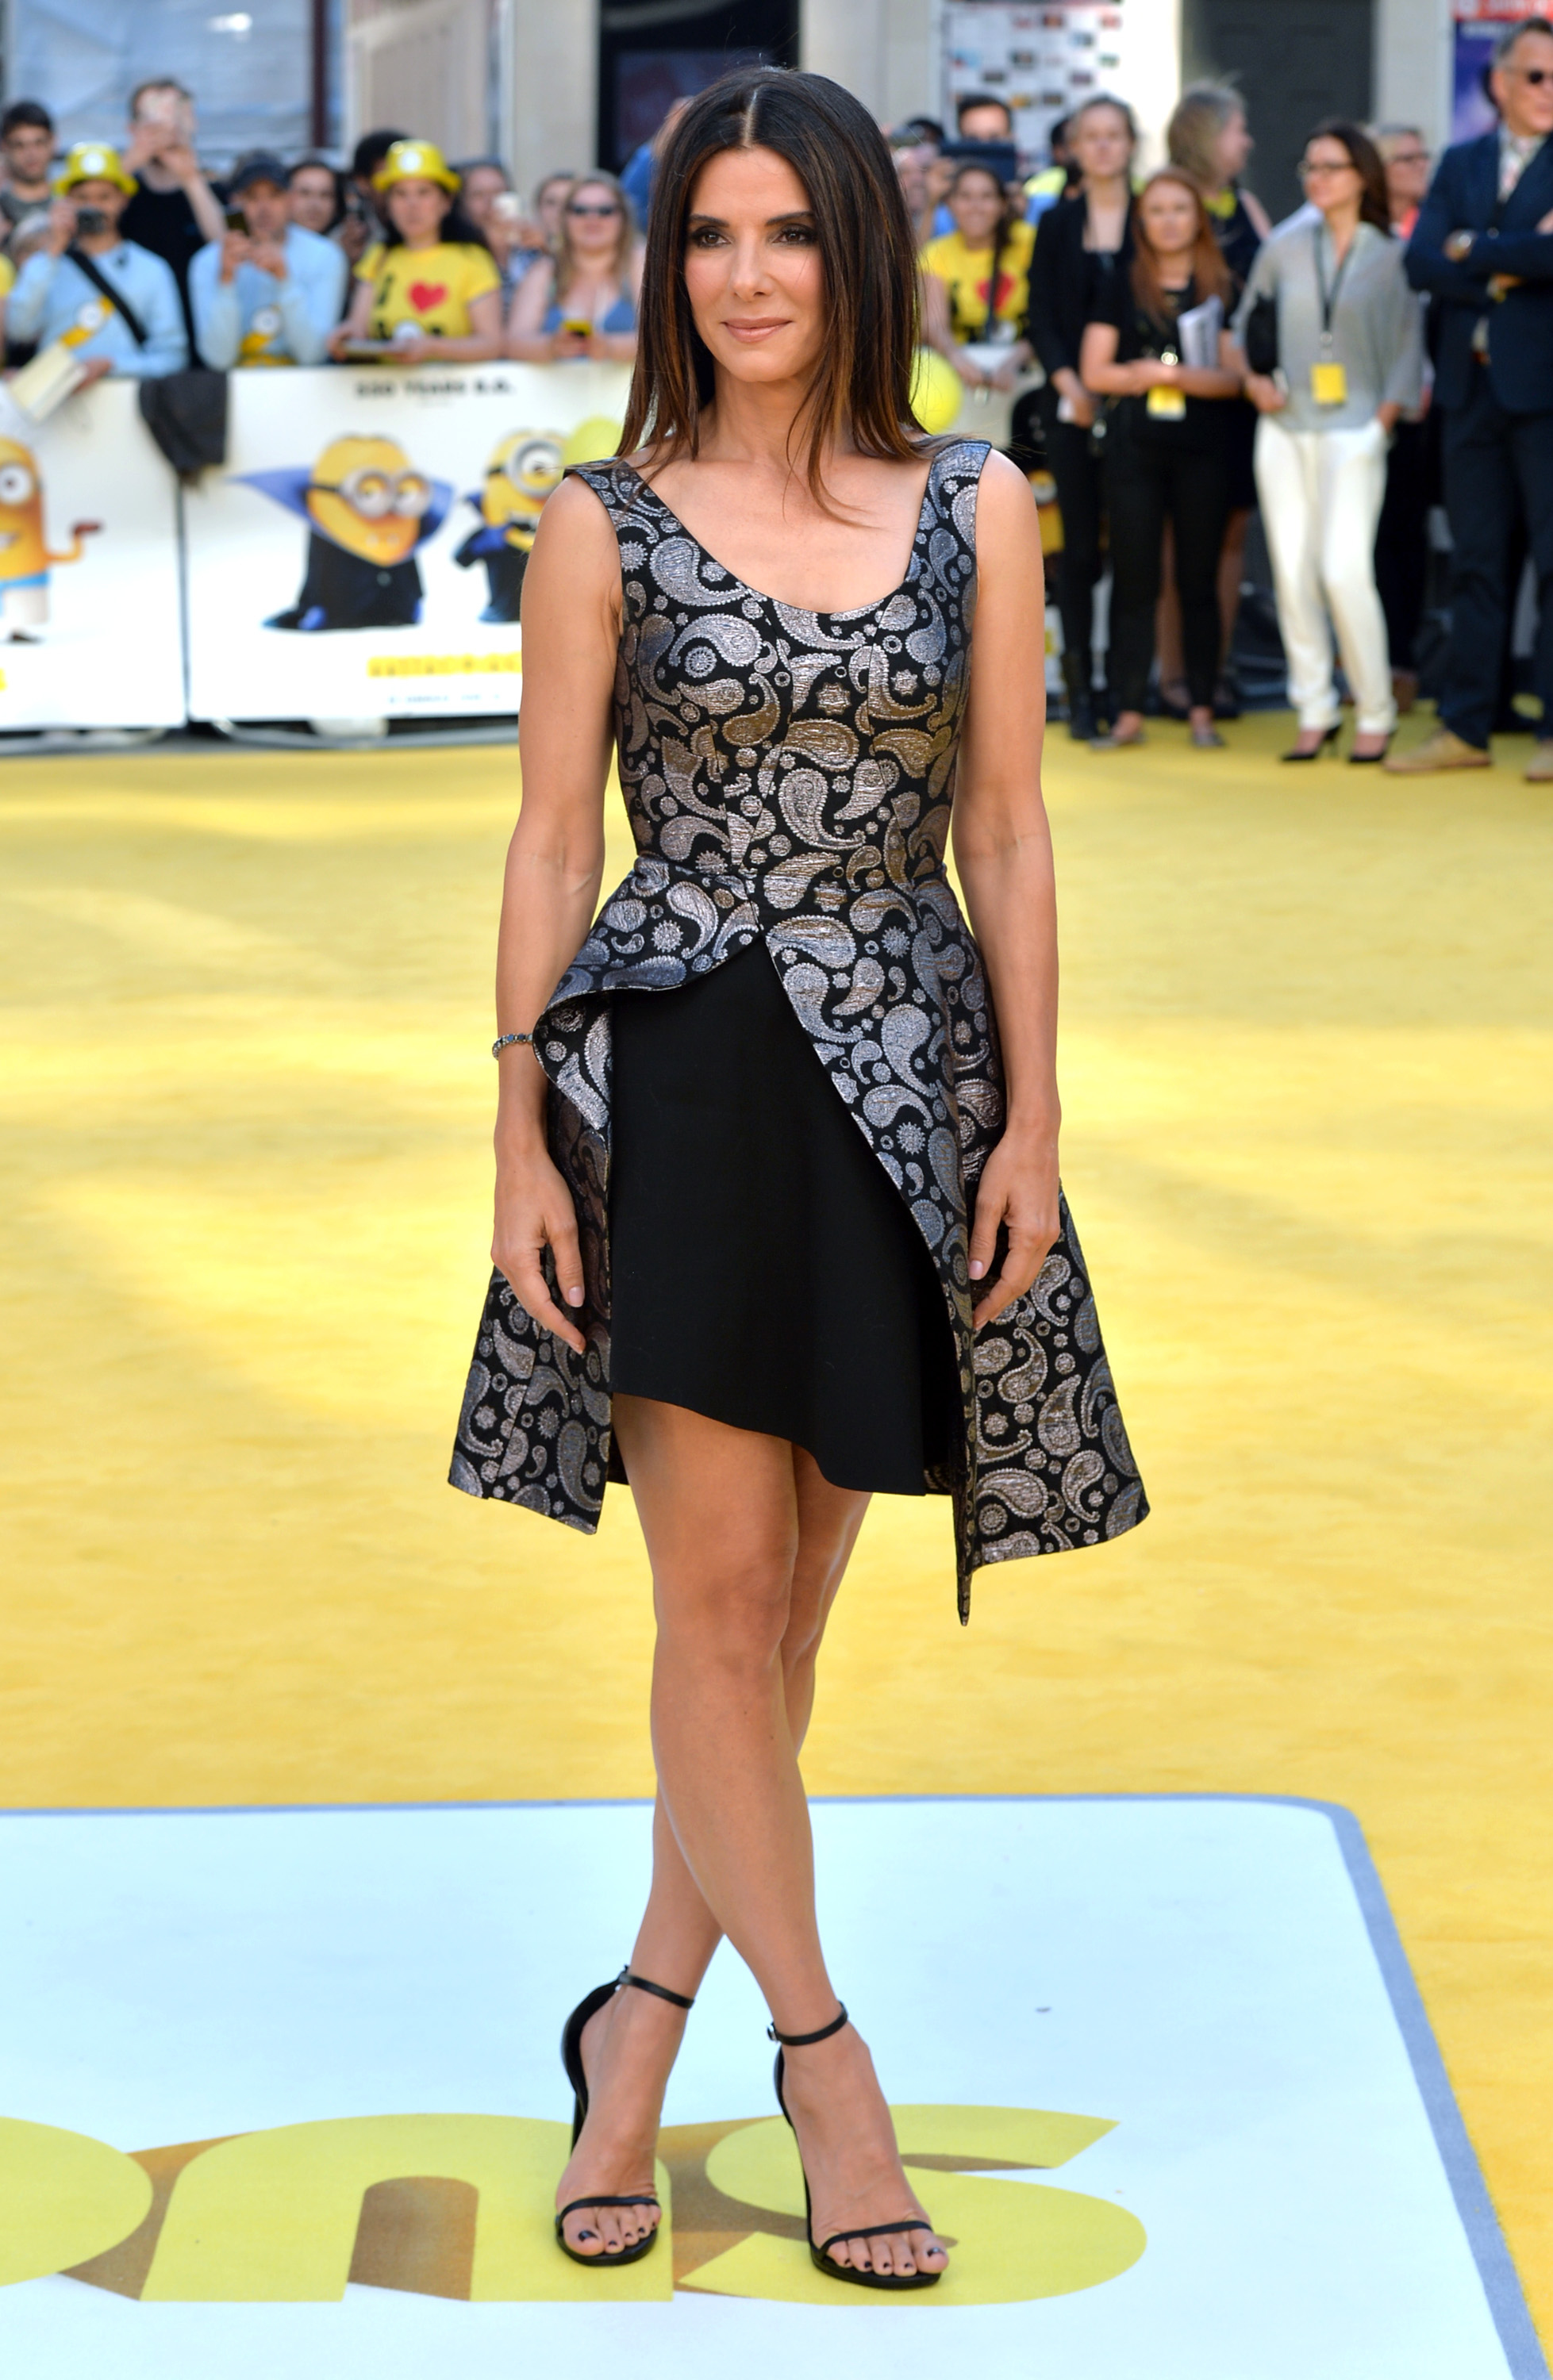 """LONDON, ENGLAND - JUNE 11:  Sandra Bullock attends the World Premiere of """"Minions"""" at Odeon Leicester Square on June 11, 2015 in London, England.  (Photo by Anthony Harvey/Getty Images)"""